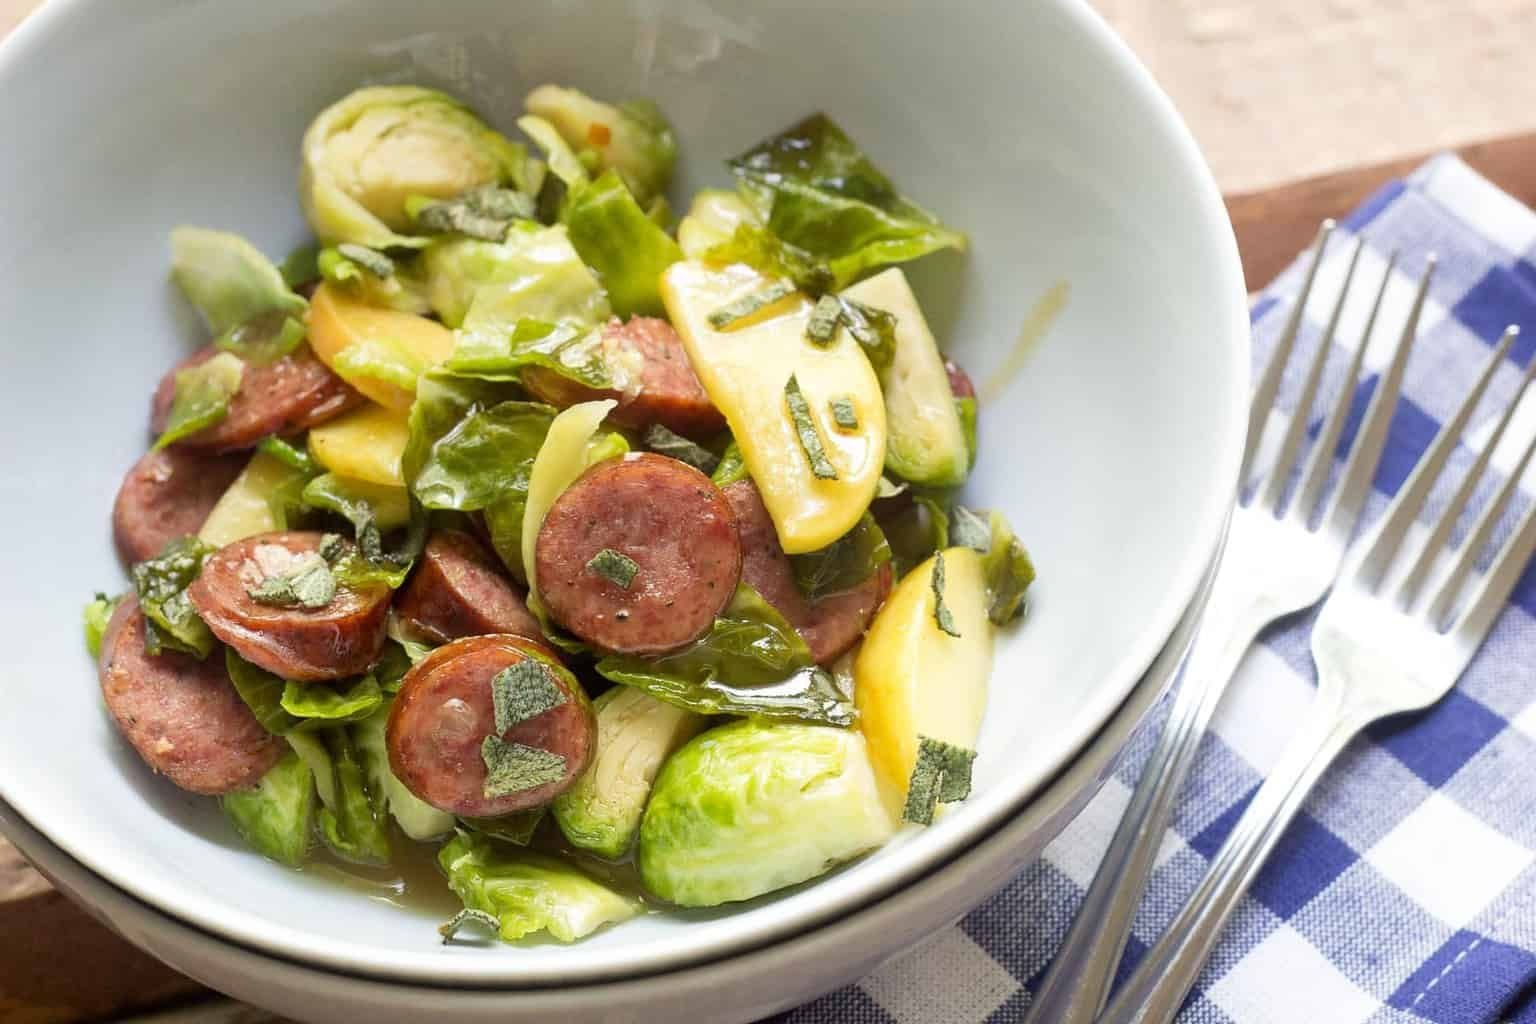 BeerGlazed Sausage with Brussels Sprouts and Apples is a